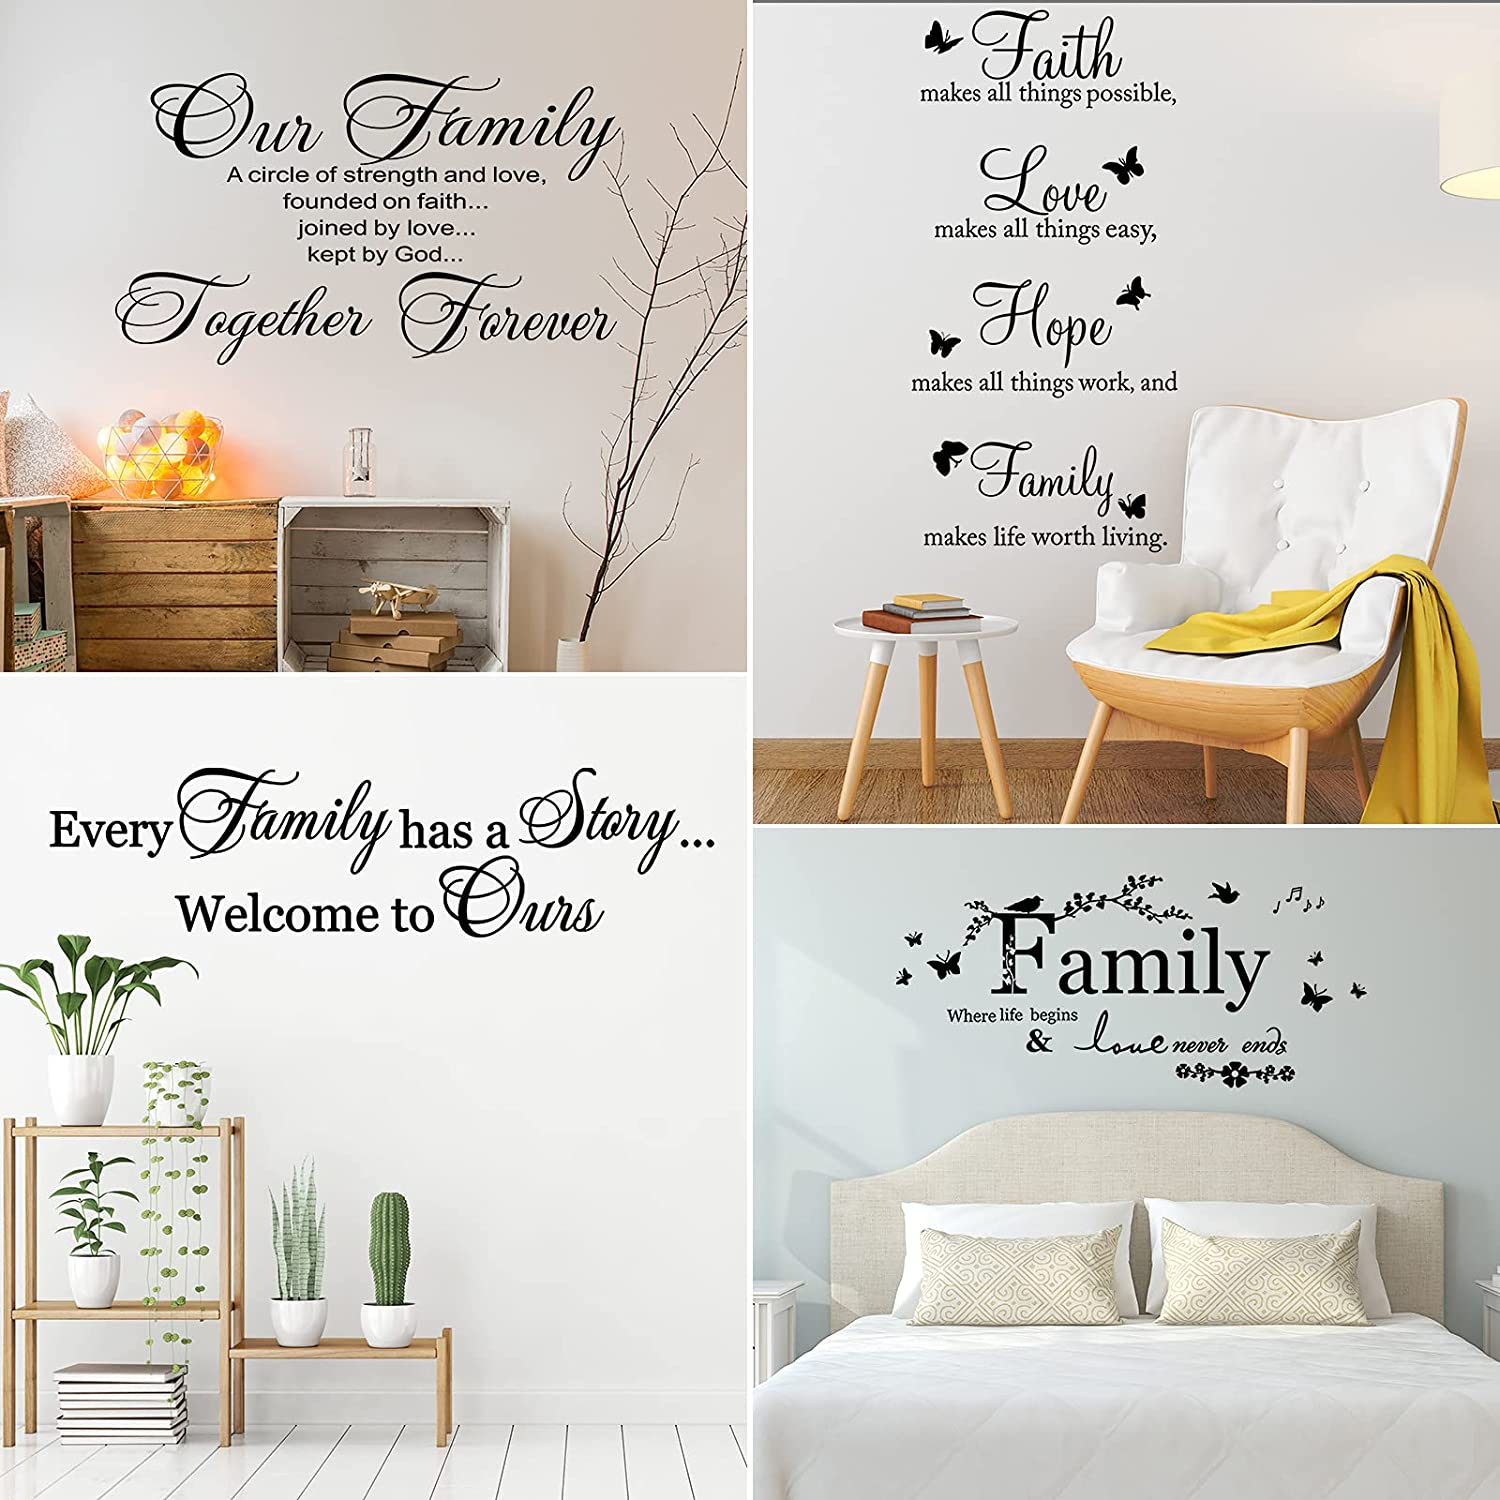 Eersida 4 Pieces Vinyl Wall Decals Faith Hope Love Family Scripture Wall Stickers Family Vinyl Wall Stickers Quotes Bible Verse Inspirational Sayings Butterfly Wall Stickers for Home Decors